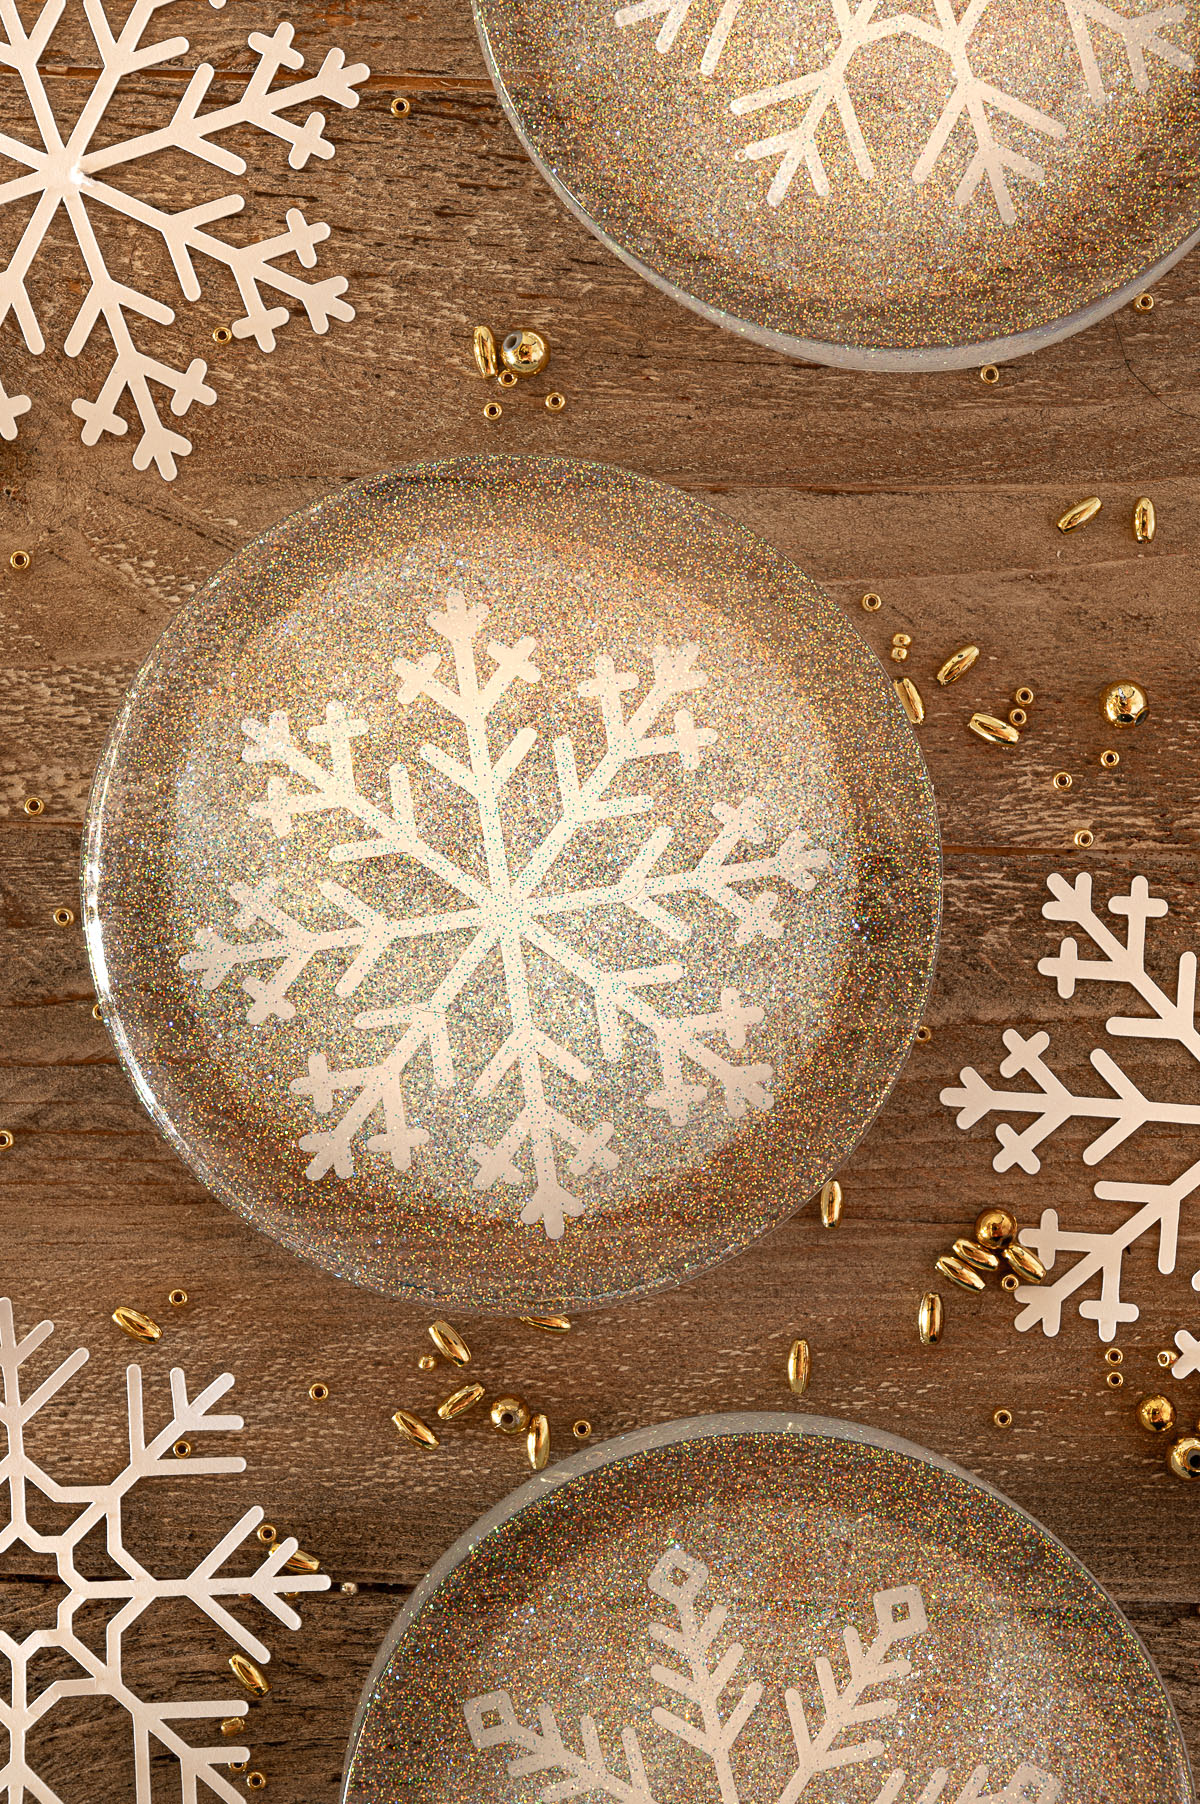 Round resin epoxy coasters with white snowflake cutouts and prismatic glitter on a rustic wooden background surrounded by gold beads of different colors.